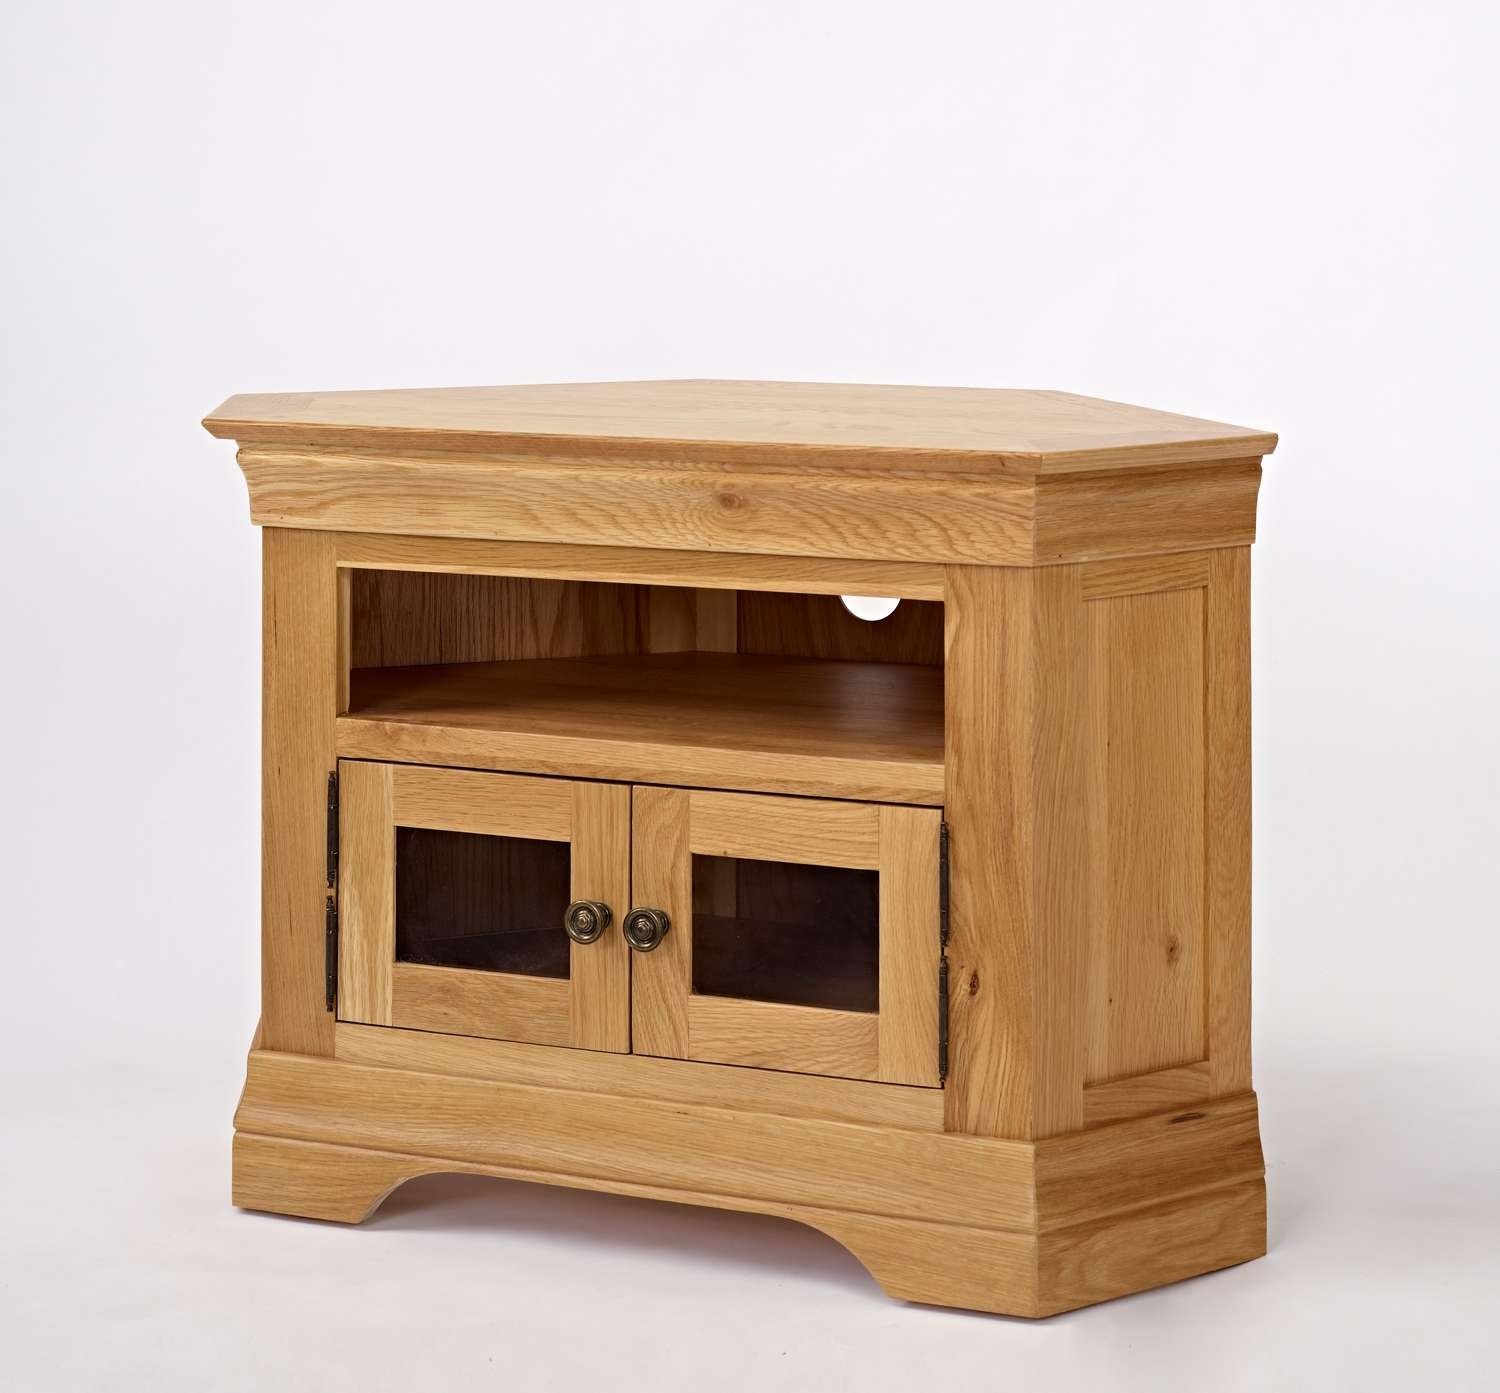 Furniture Oak Wood Media Cabinet With Open Shelf And Storage Solid Inside Real Wood Corner Tv Stands (View 4 of 15)